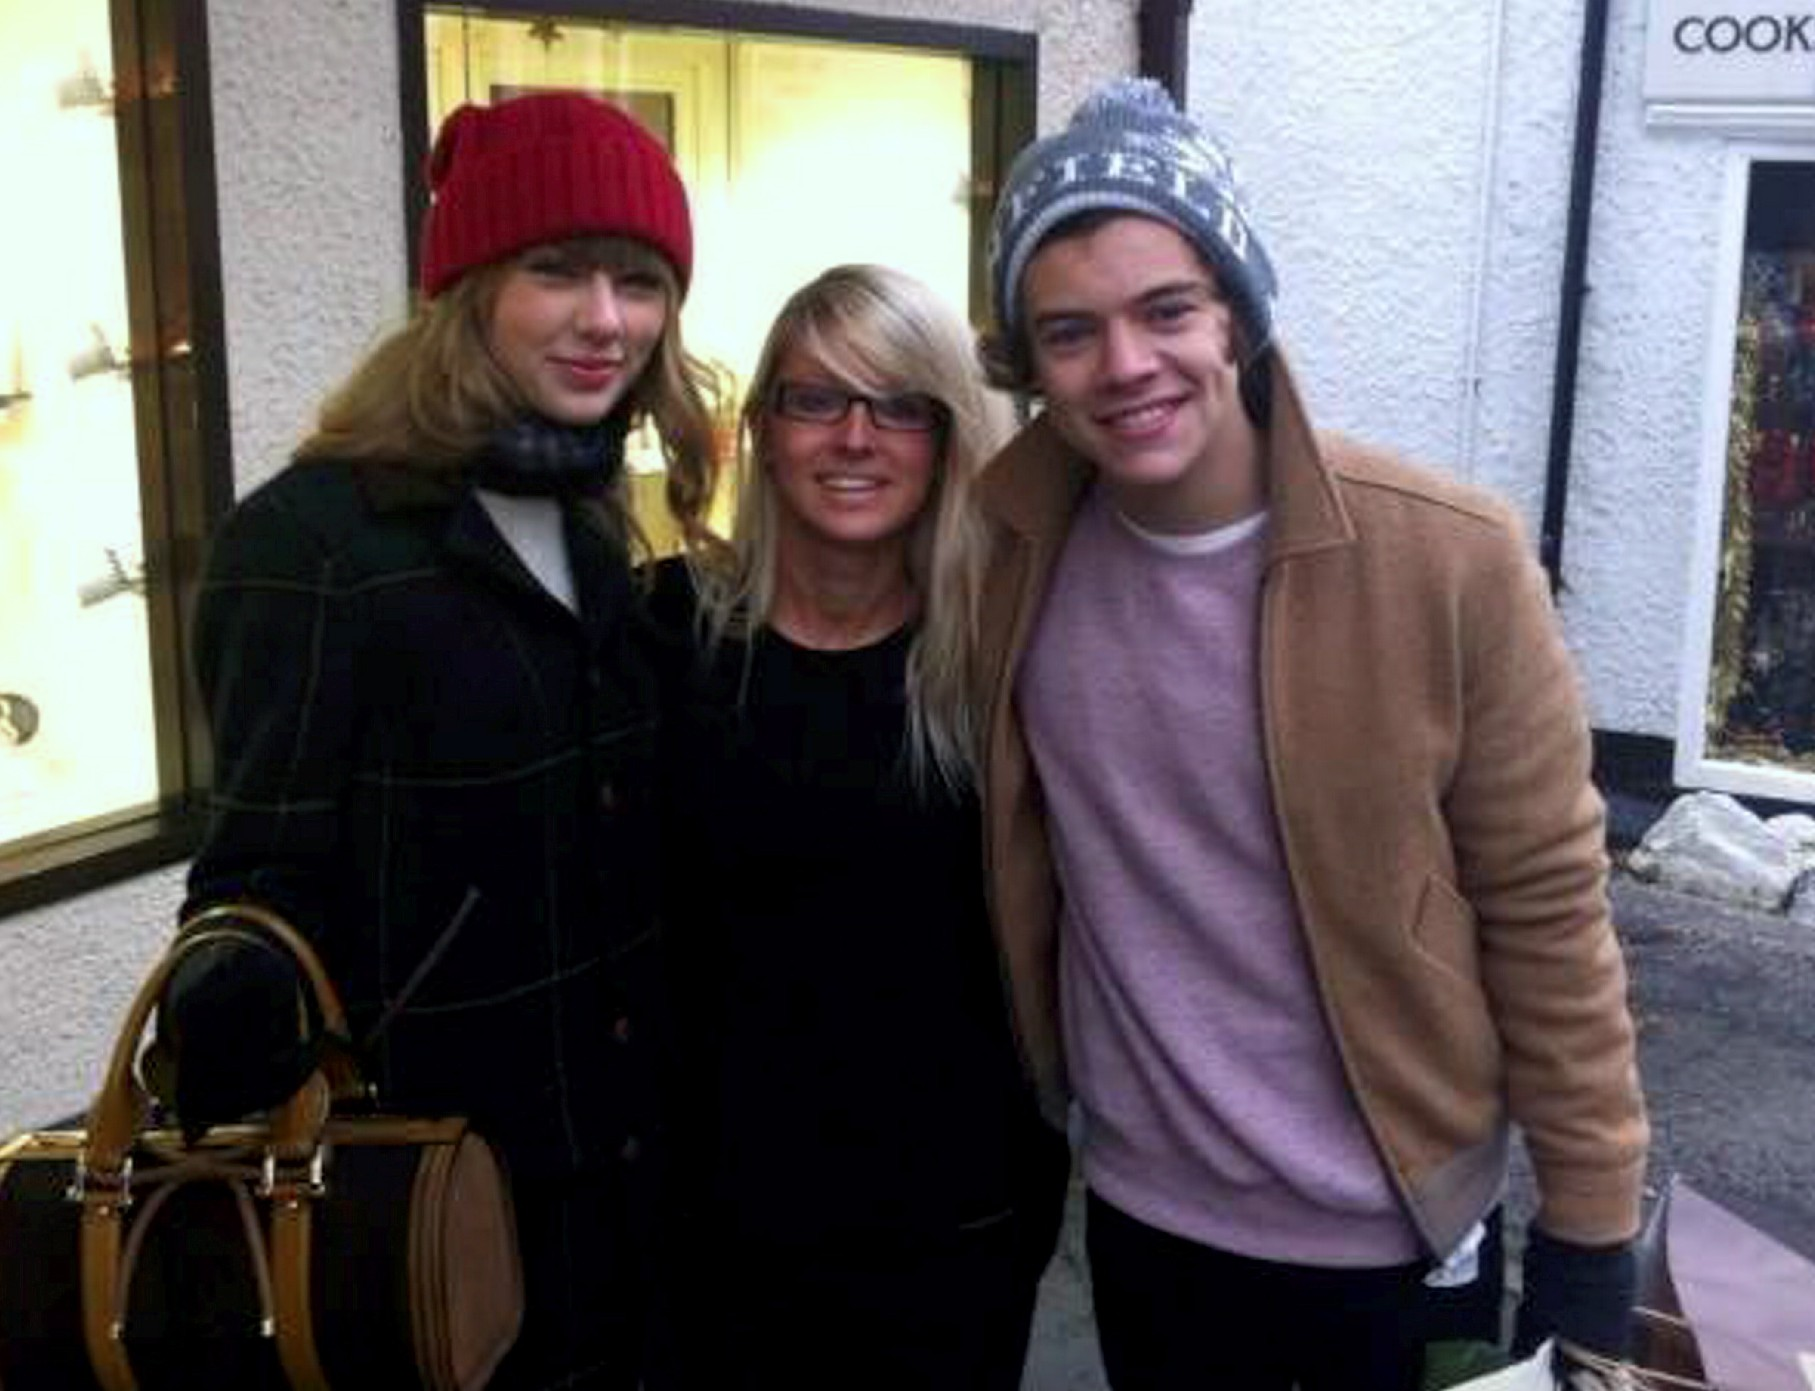 Harry Styles and Taylor Swift pose for a photo with a fan during a shopping trip to the Lake District